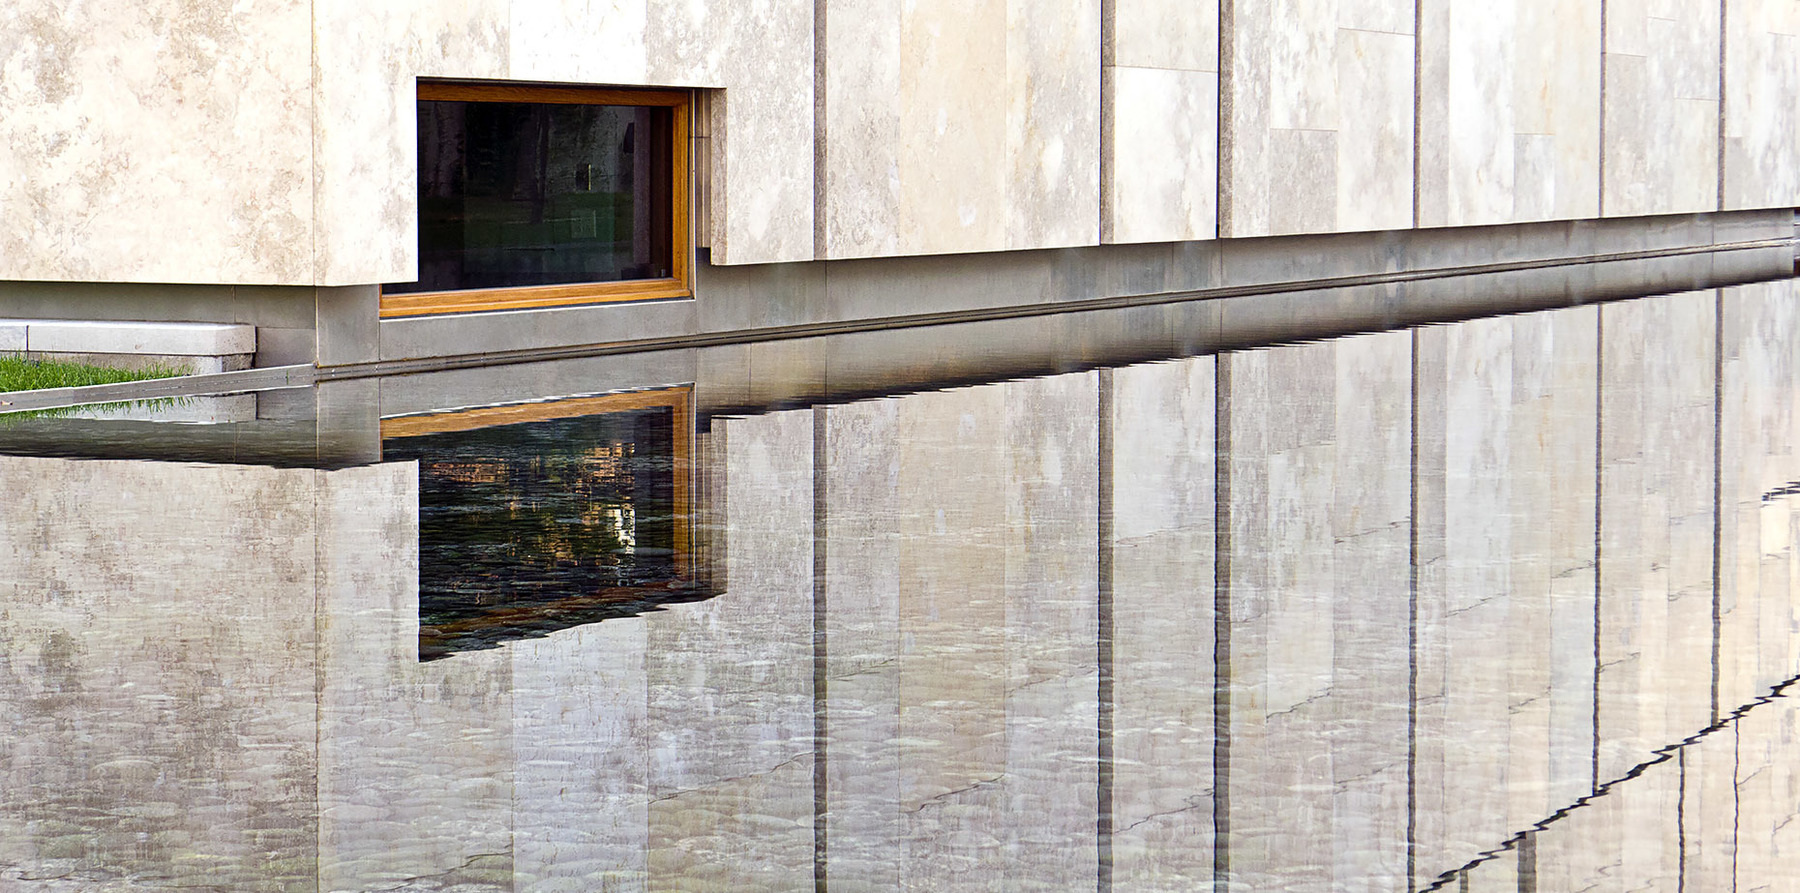 Philadelphia, PA